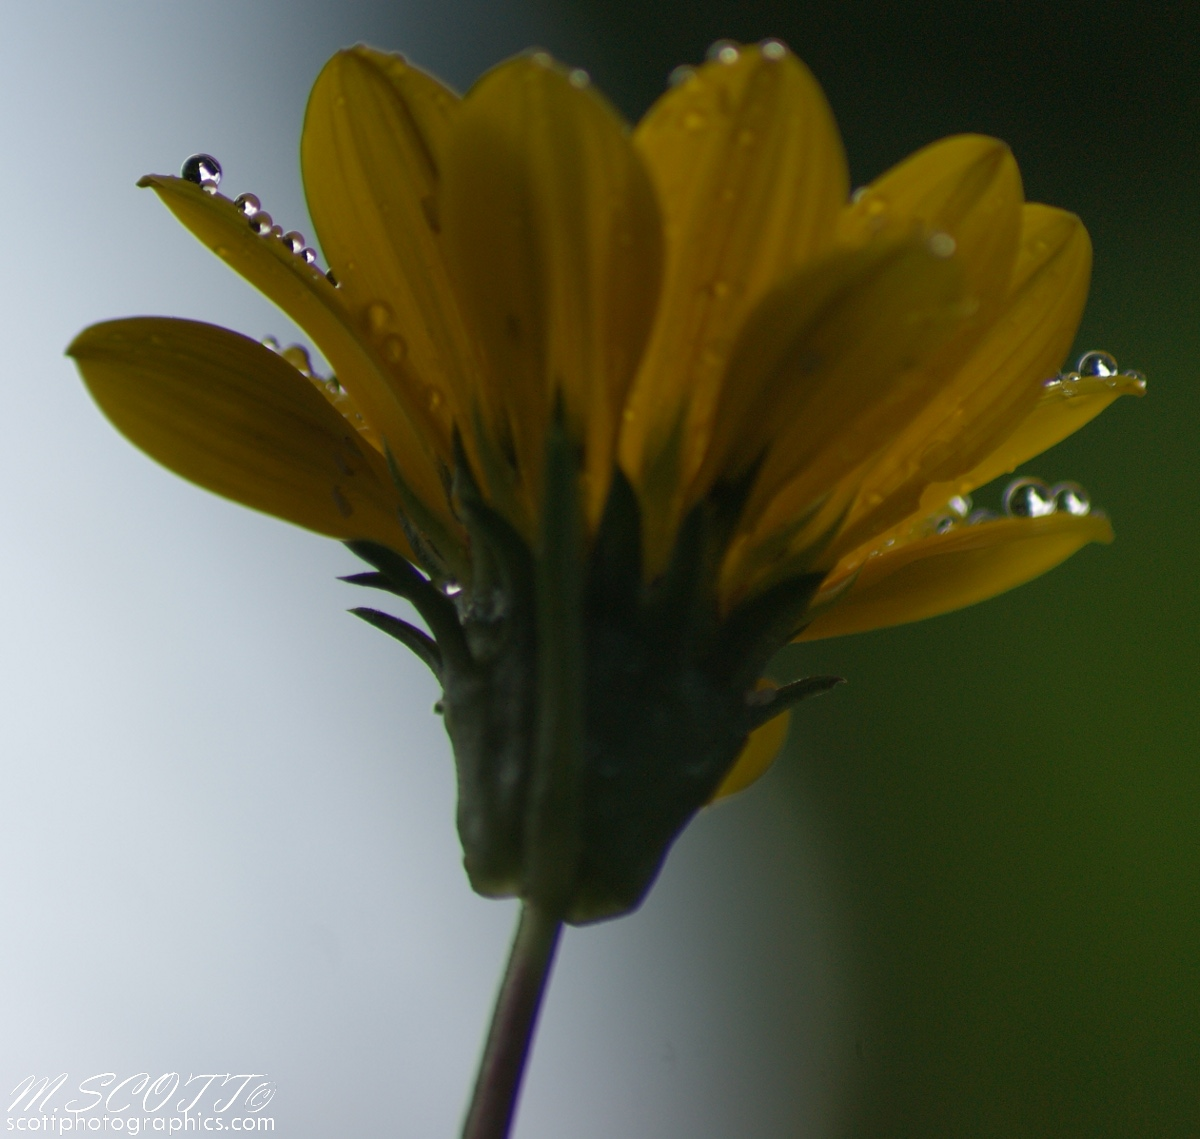 https://www.images.scottphotographics.com/using-water-droplets-to-impove-flower-photos/using-water-droplets-to-improve-flower-photos-4.jpg